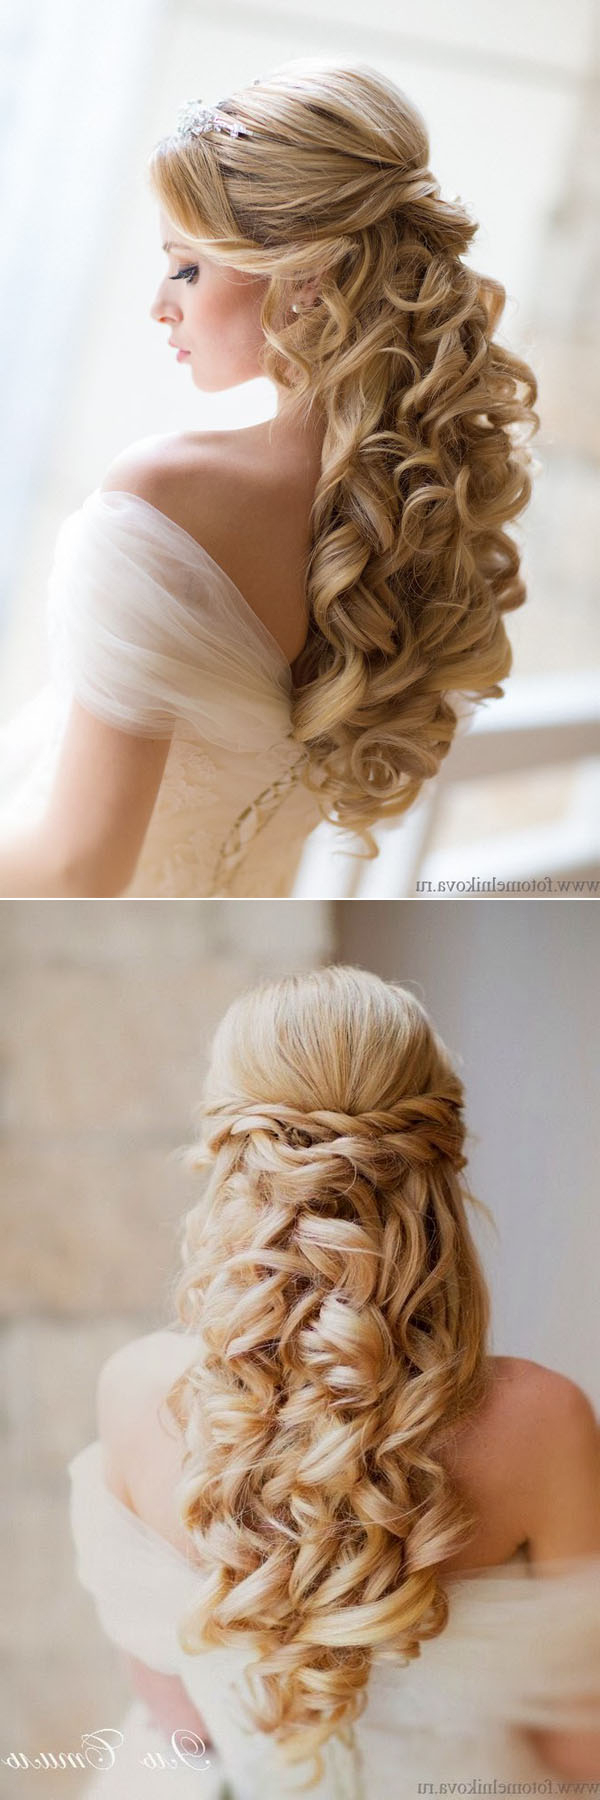 20 Awesome Half Up Half Down Wedding Hairstyle Ideas Throughout 2017 French Braided Halfdo Bridal Hairstyles (Gallery 13 of 20)